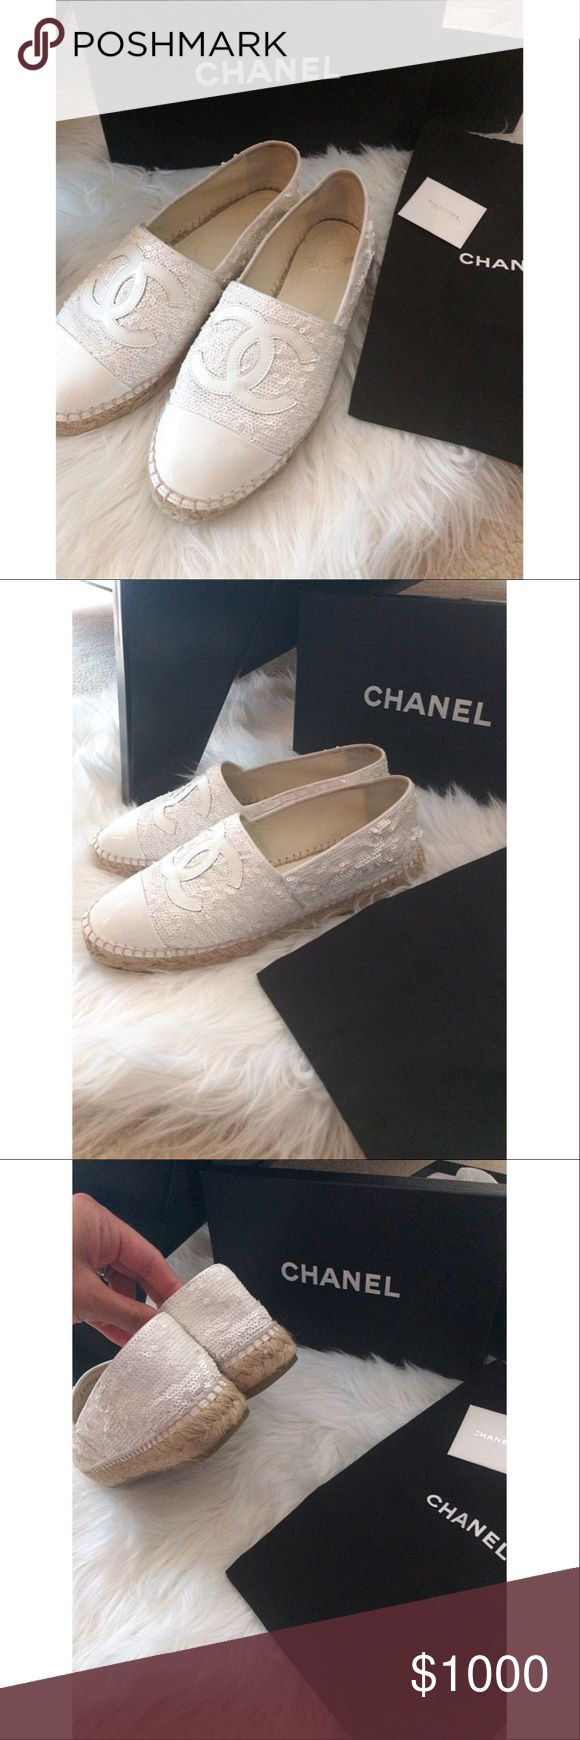 Authentic Chanel White Sequin Espadrilles Authentic Chanel White Sequin Espadrilles, Worn only a handful of time, no scuffs, no scratches. In prestige amazing condition. These shoes are so beautiful and need a great home. Shoes come with original box, dust bag, and the Chanel care instructions book. Size 8, size 38 as stated on the box. These are limited shoes and rarely seen. This purchase will also be authenticated by Poshmark as their concierge service. Offers welcome. CHANEL Shoes…